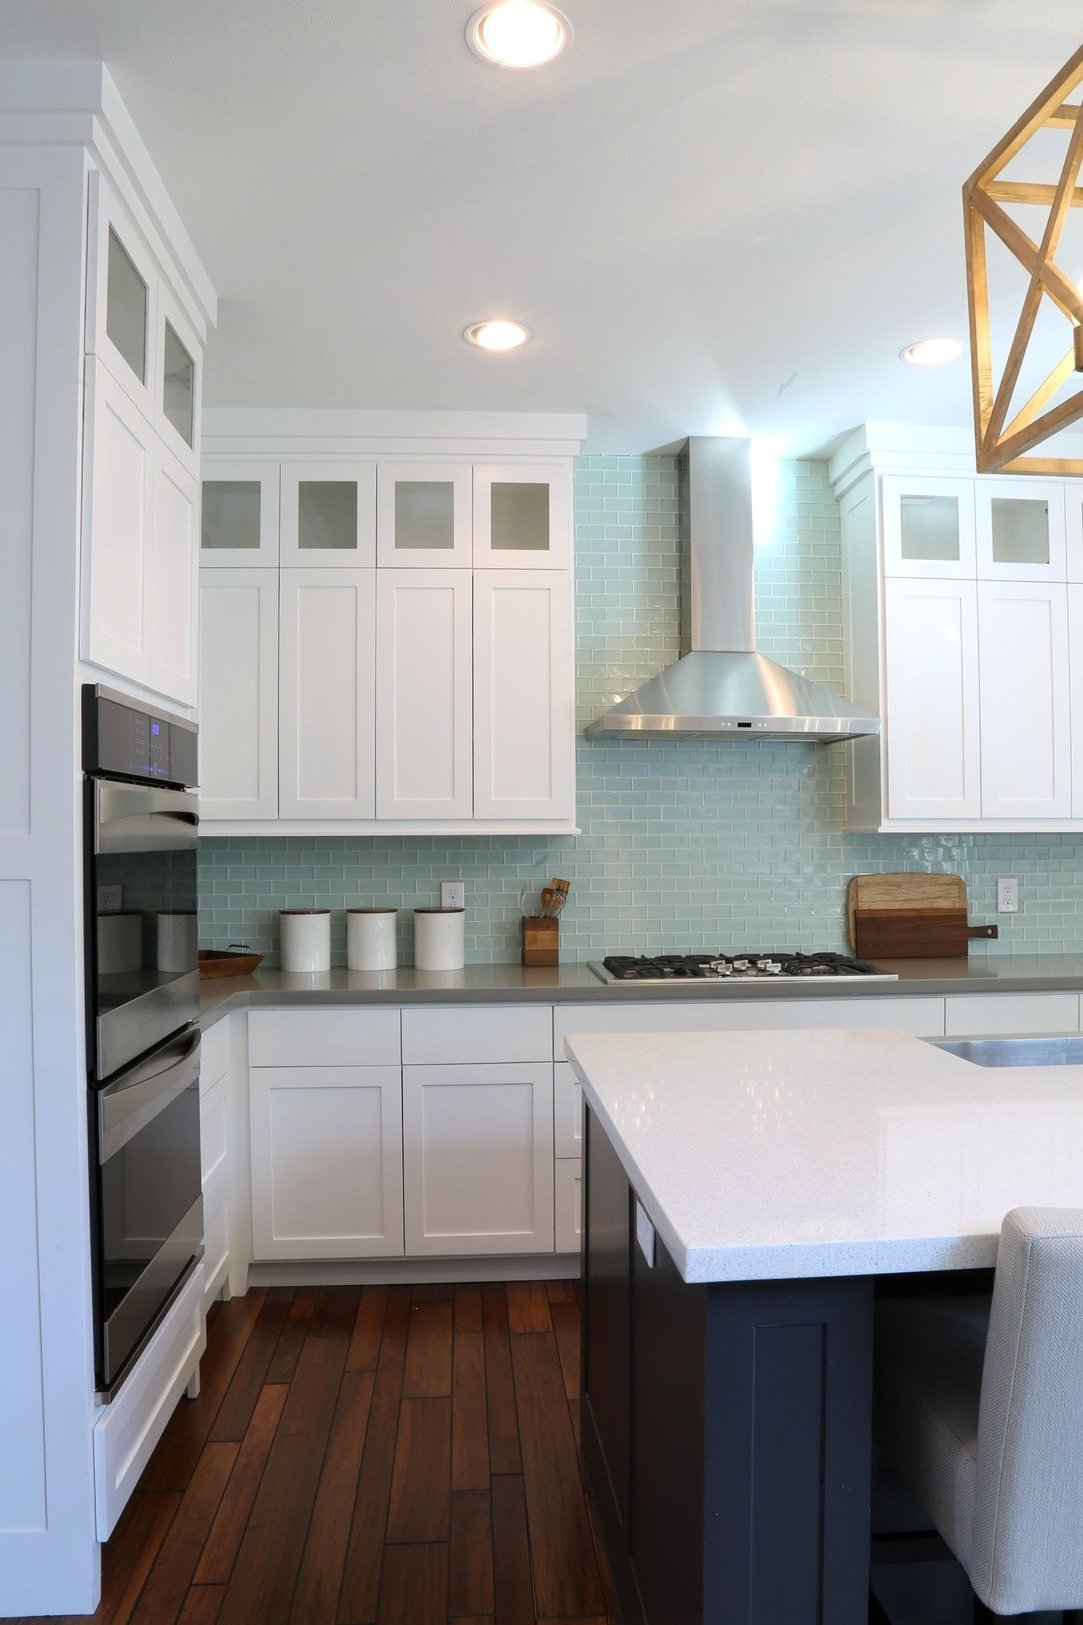 You Can Really See What I Mean By Looking At The Kitchen In My Client S Home Where All Cabinetry And Trim Are Painted With Decorator White